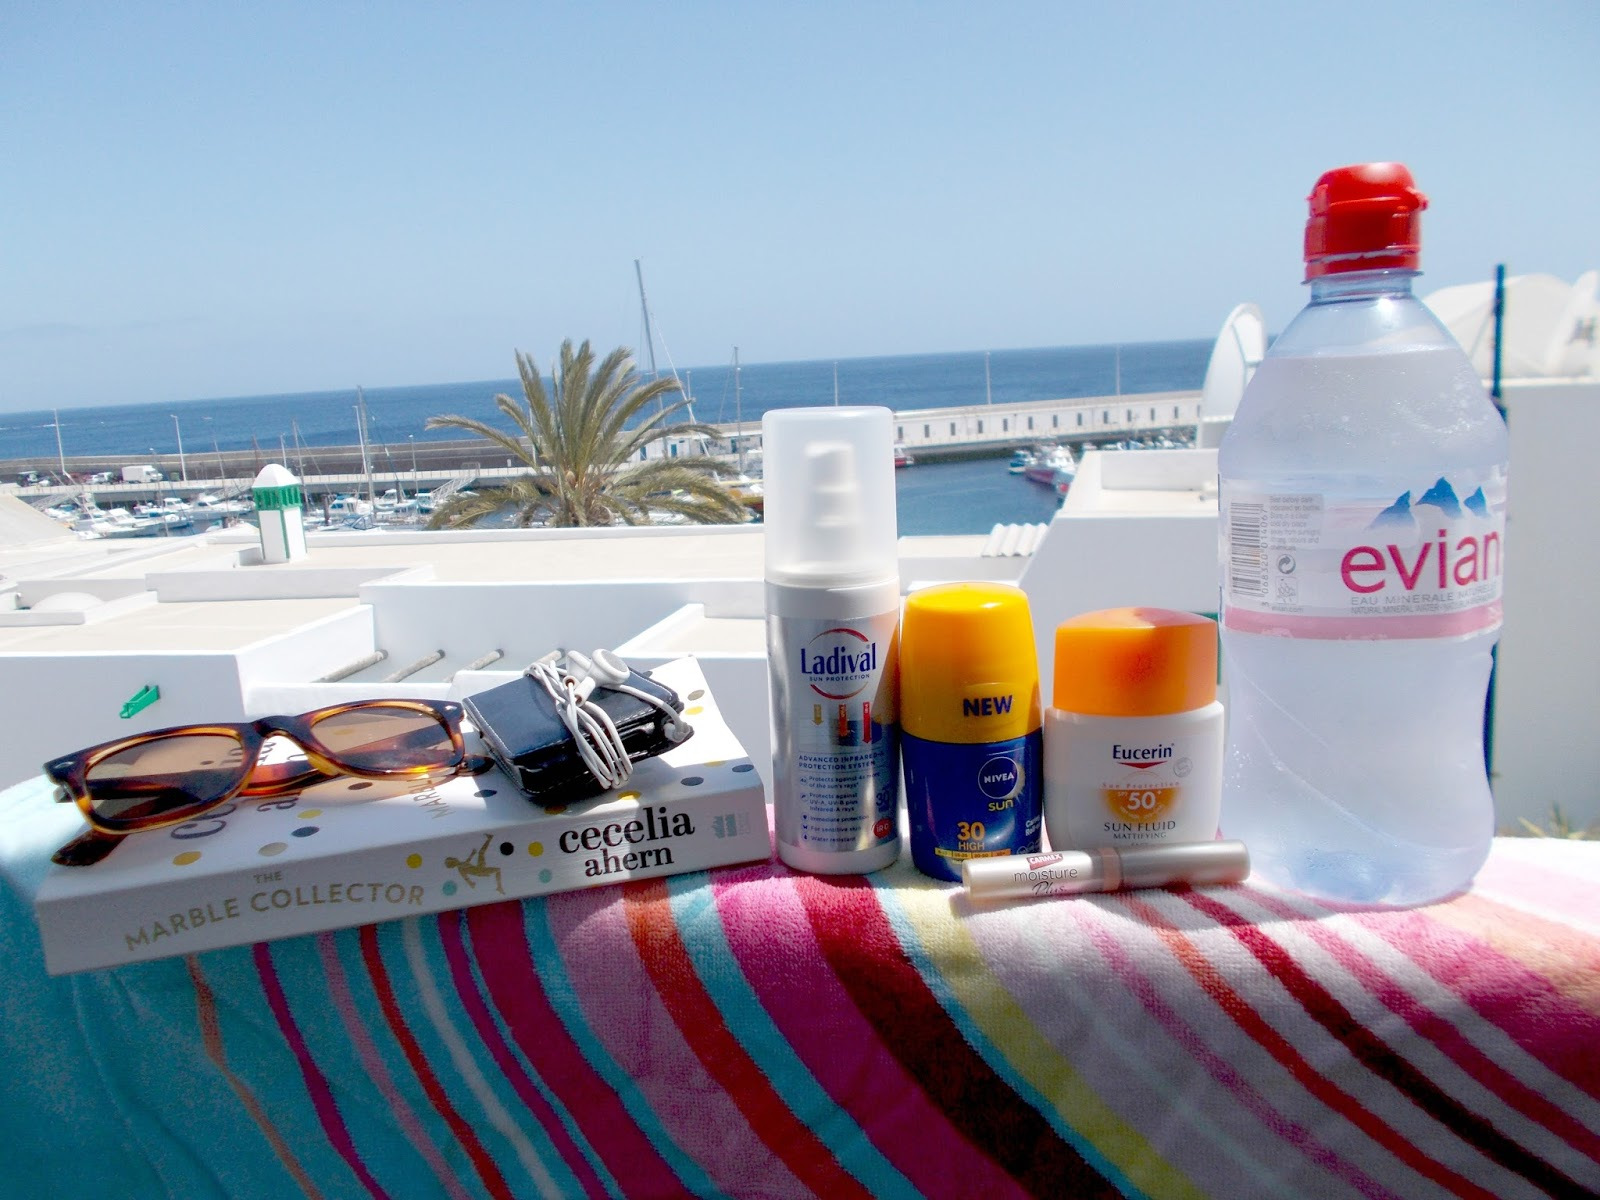 poolside beach side vacation holiday essentials sunscreen ladival spf eucerin mattifying fluid nivea caring roll on carmex moisture plus lip balm sunglasses water book ipod beach towell bag